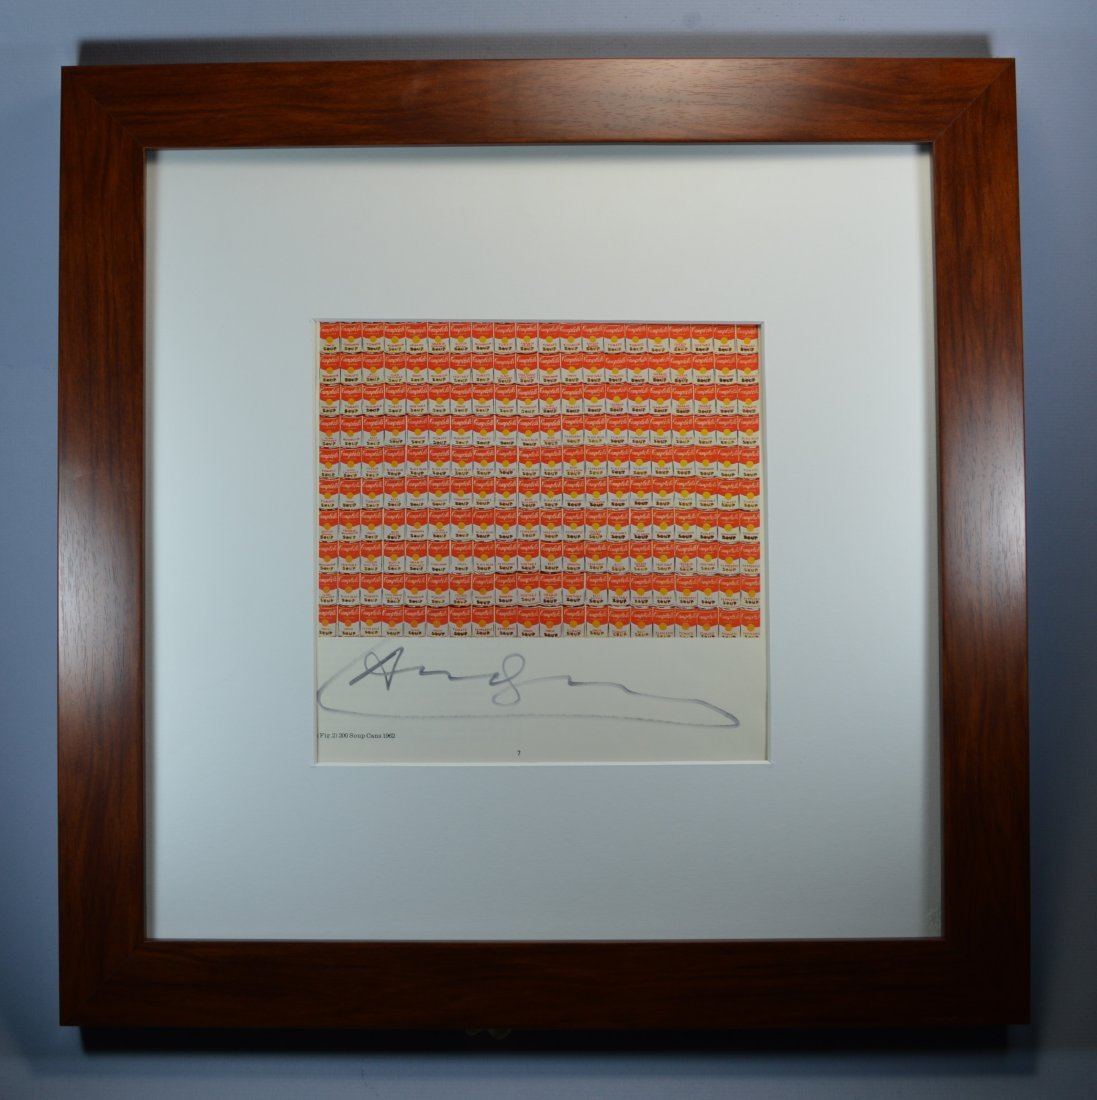 ANDY WARHOL VINTAGE LITHOGRAPH. - 3